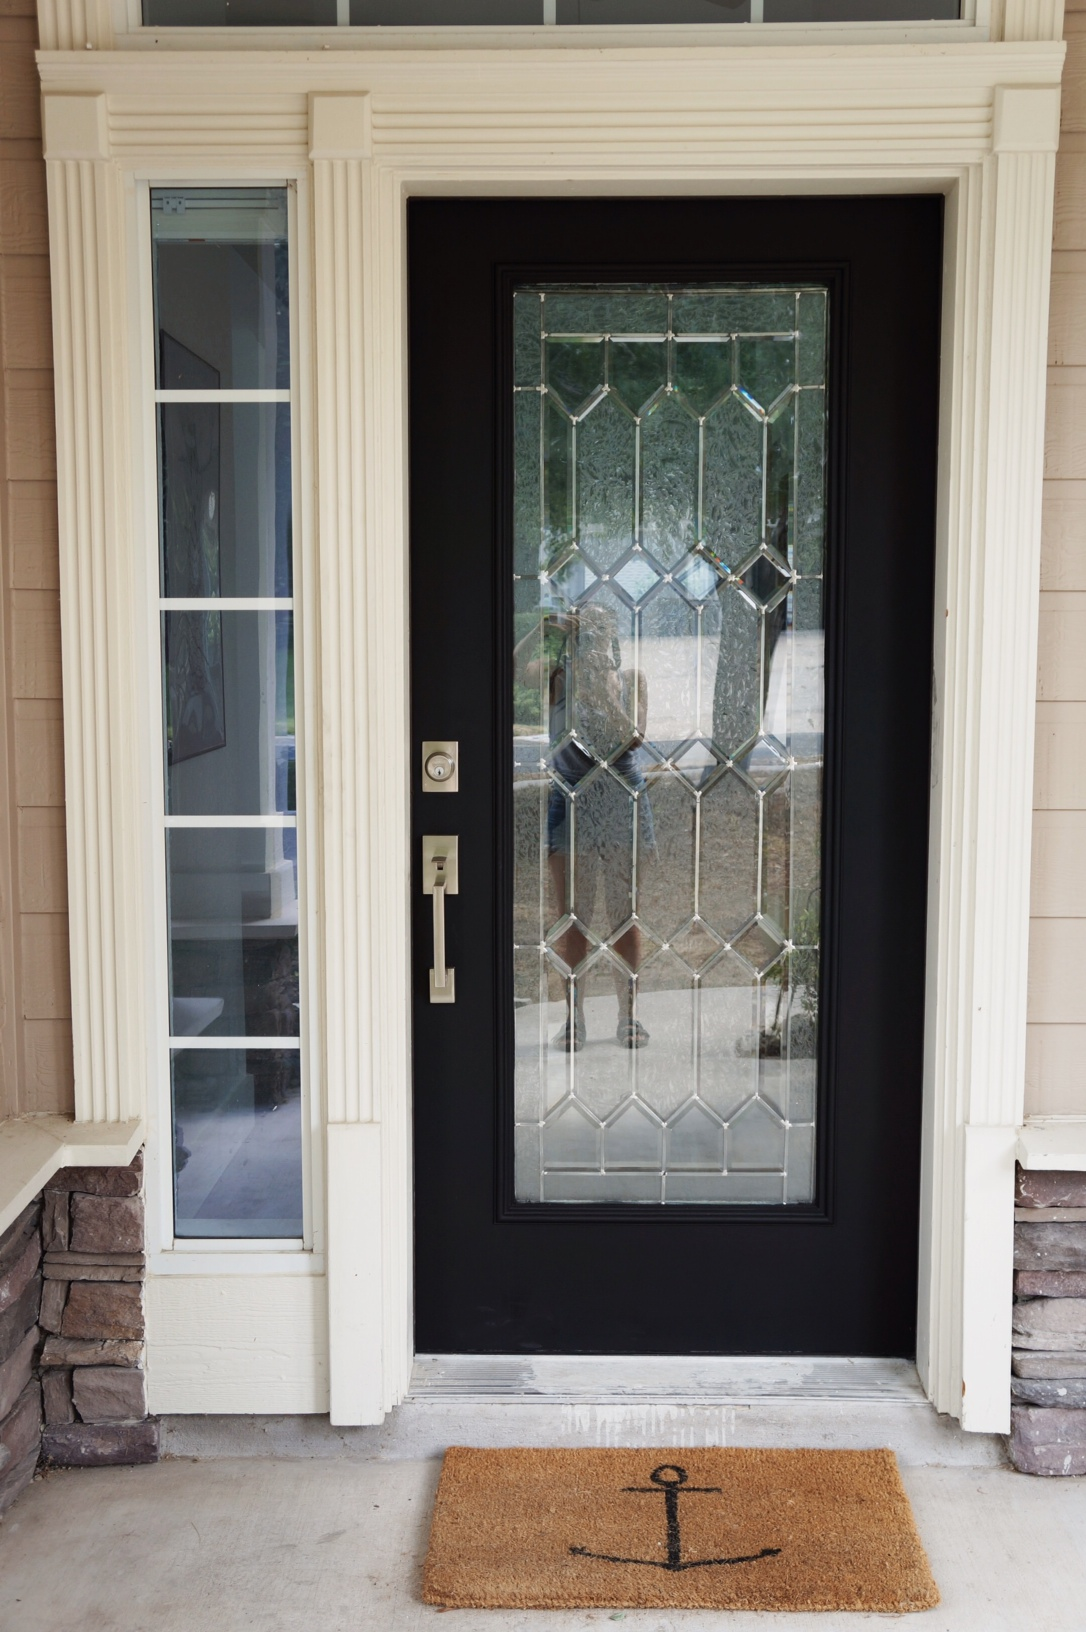 Super Diy How I Painted 3 Of My House Doors Matte Black Largest Home Design Picture Inspirations Pitcheantrous